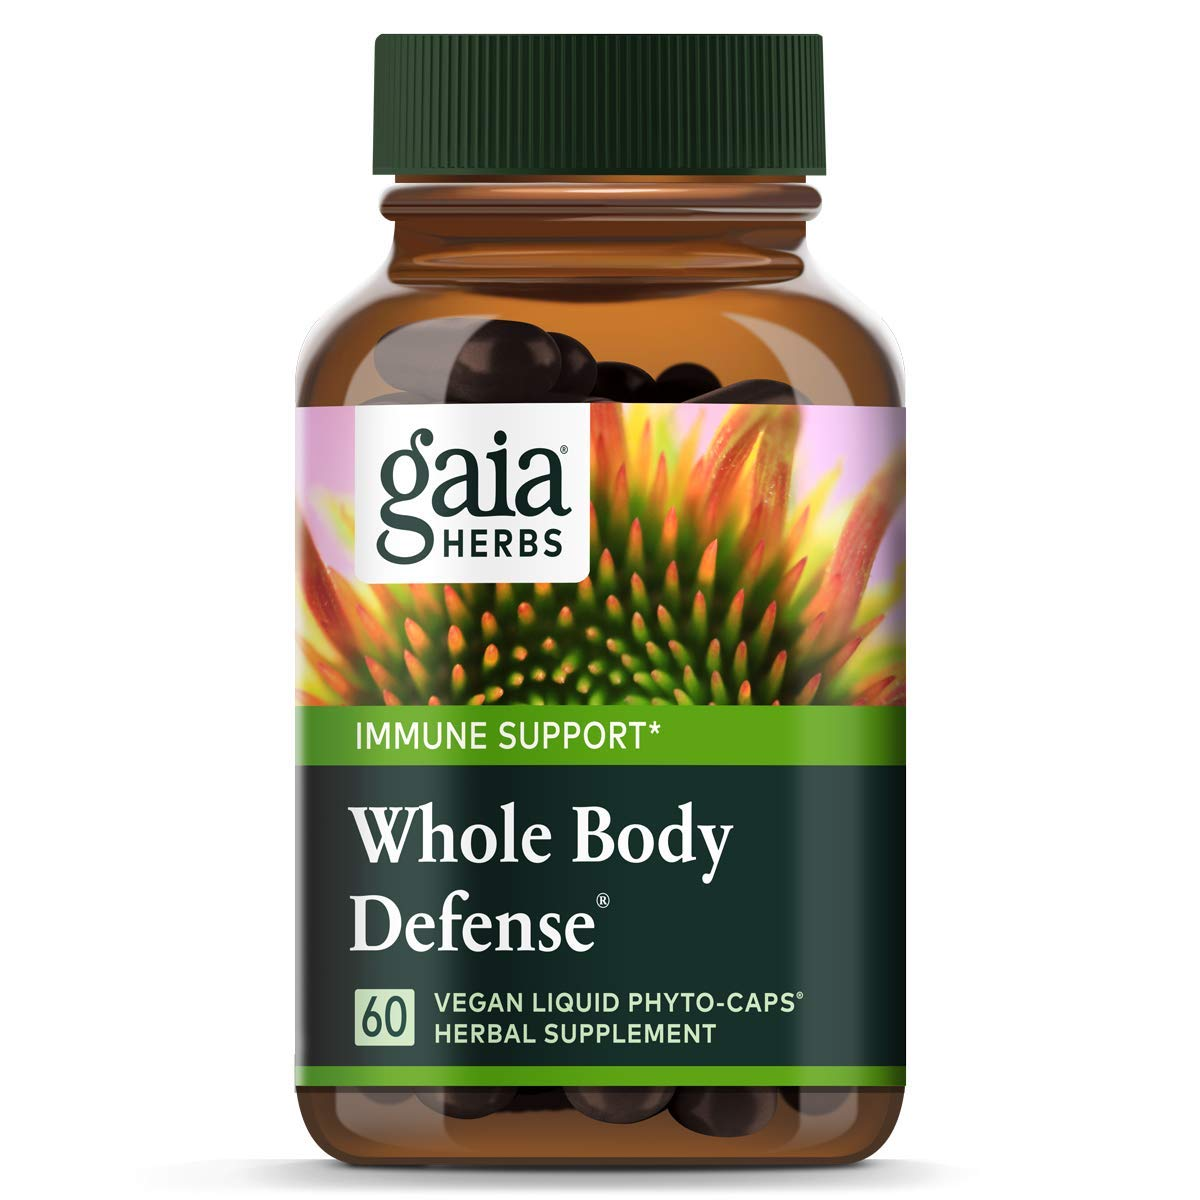 Gaia Herbs Whole Body Defense, Vegan Liquid Capsules, 60 Count – Daily Immune Support and Wellness Formula, Astragalus, Maitake Organic Echinacea